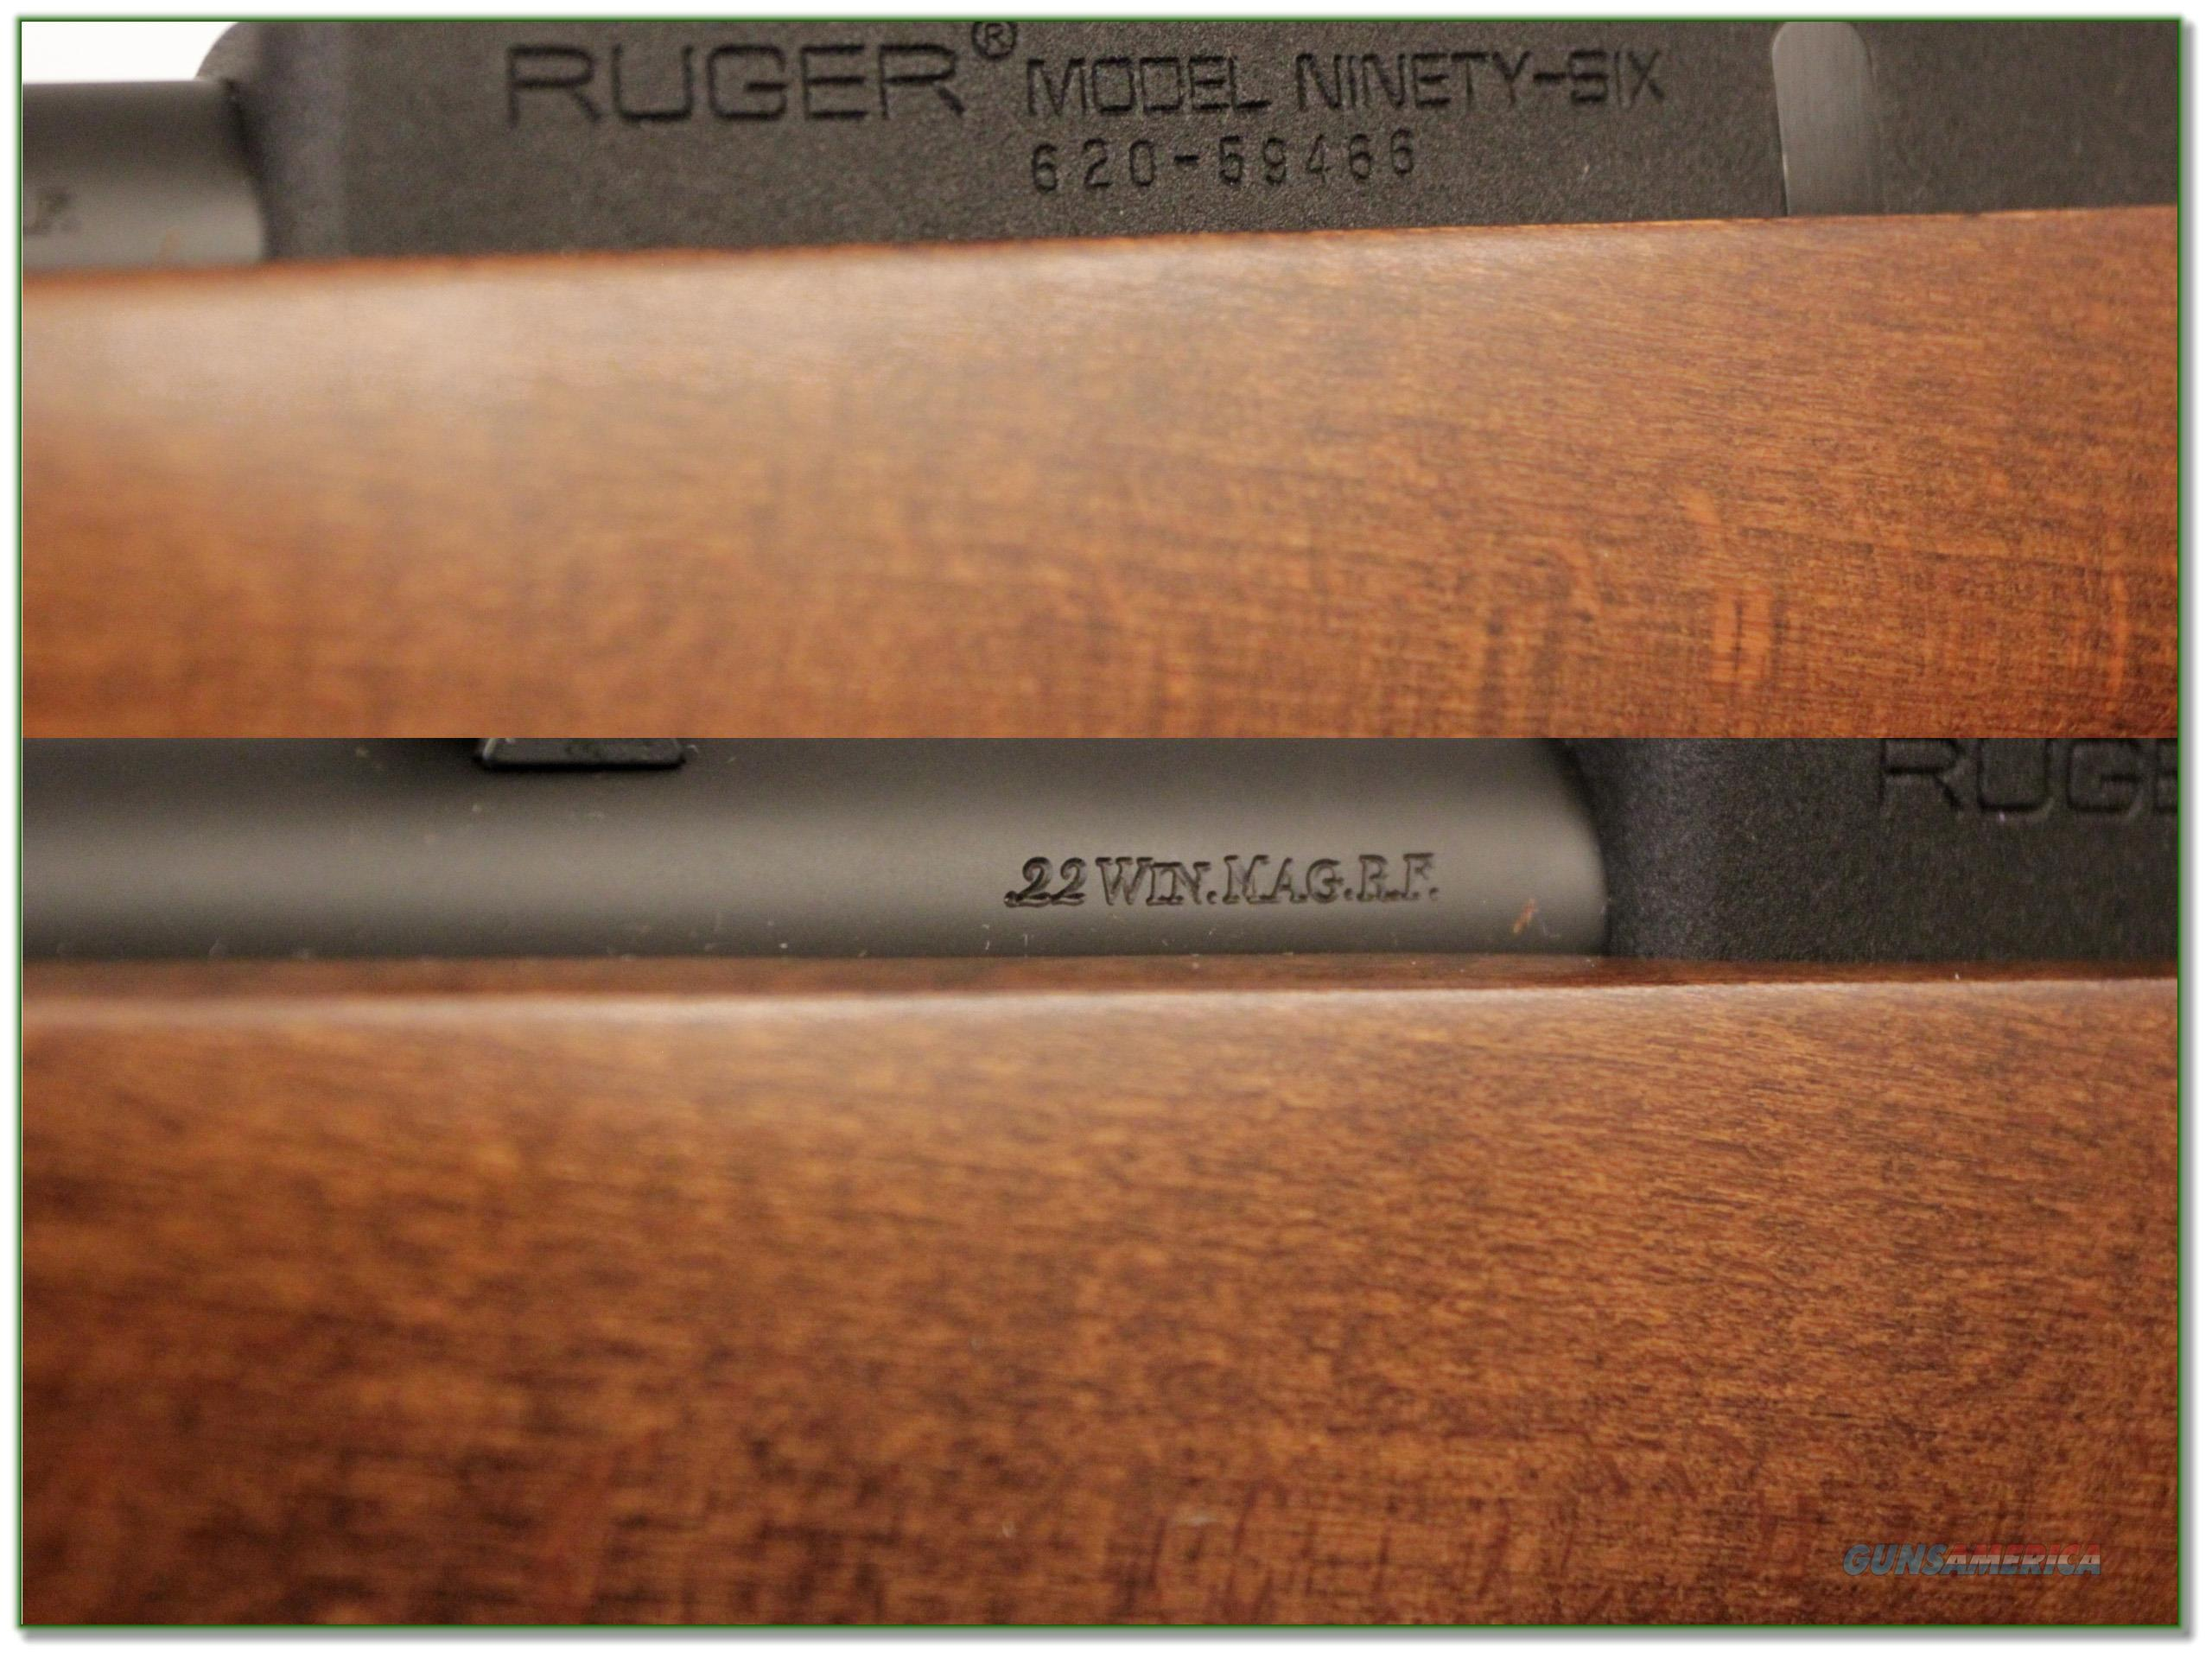 Ruger Model 96 22 Magnum Collector Condition 3 ... for sale